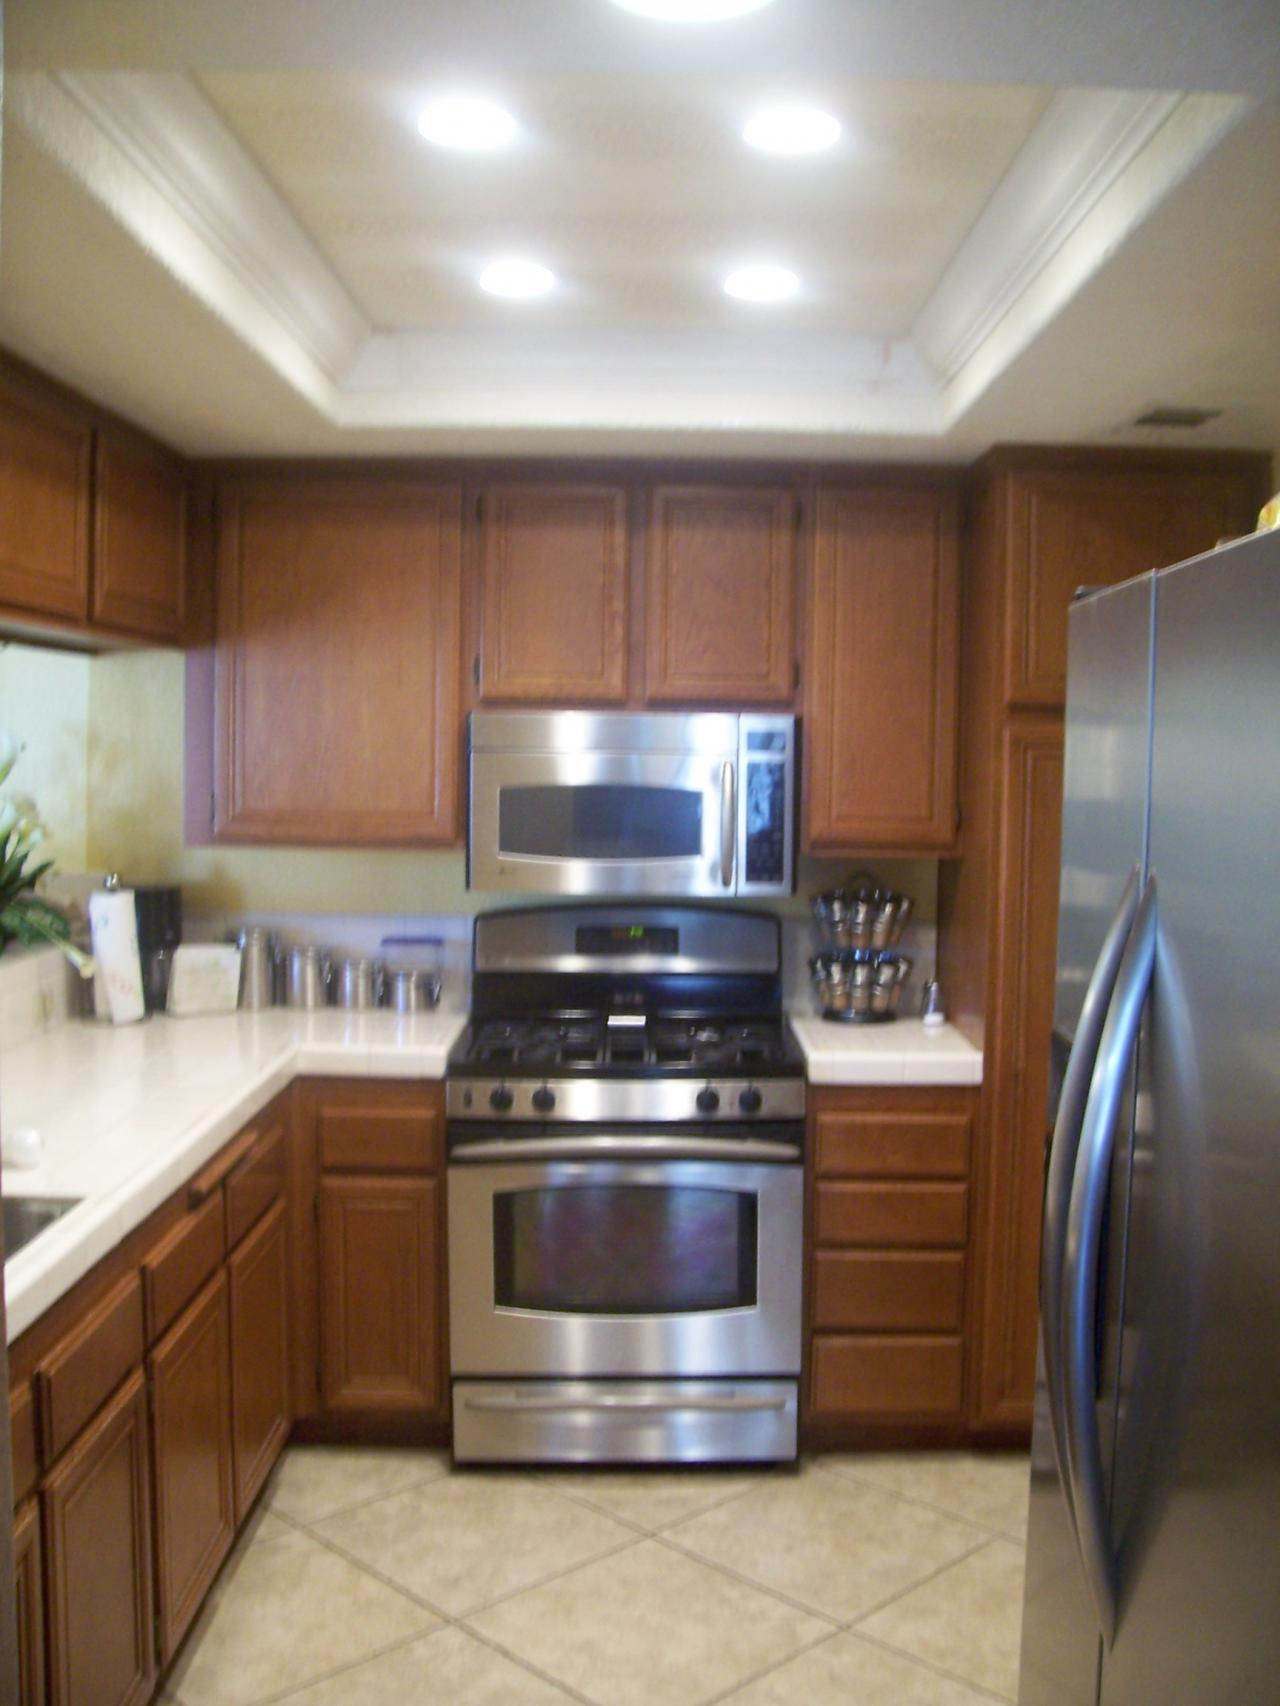 small kitchen lighting instant hot water systems interior can light recessed quality